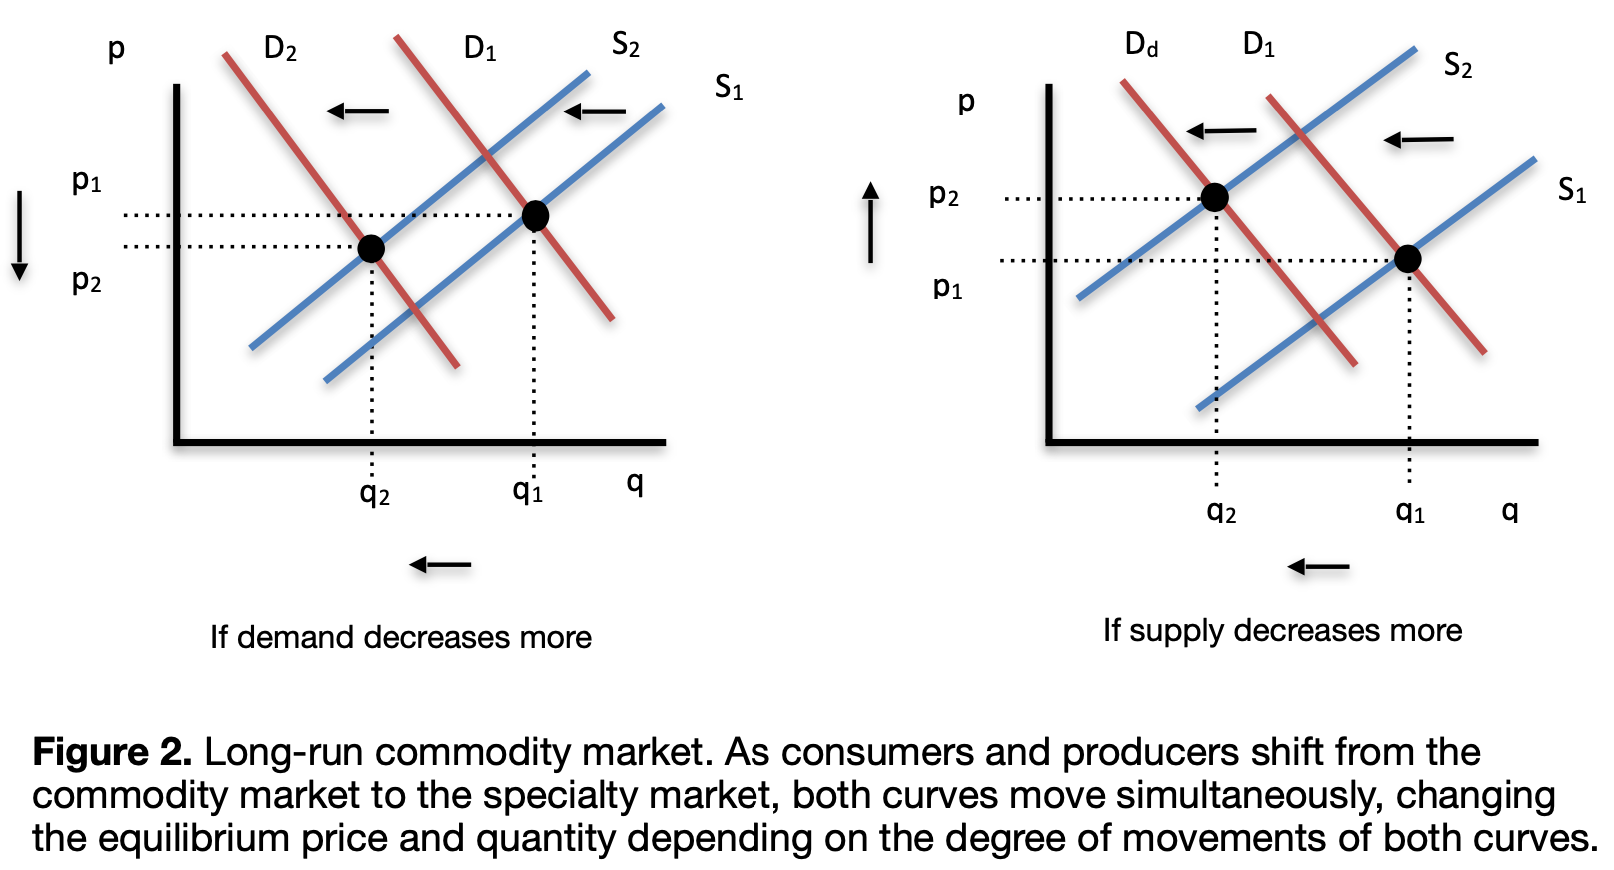 commodity market curves in long-run equilibrium